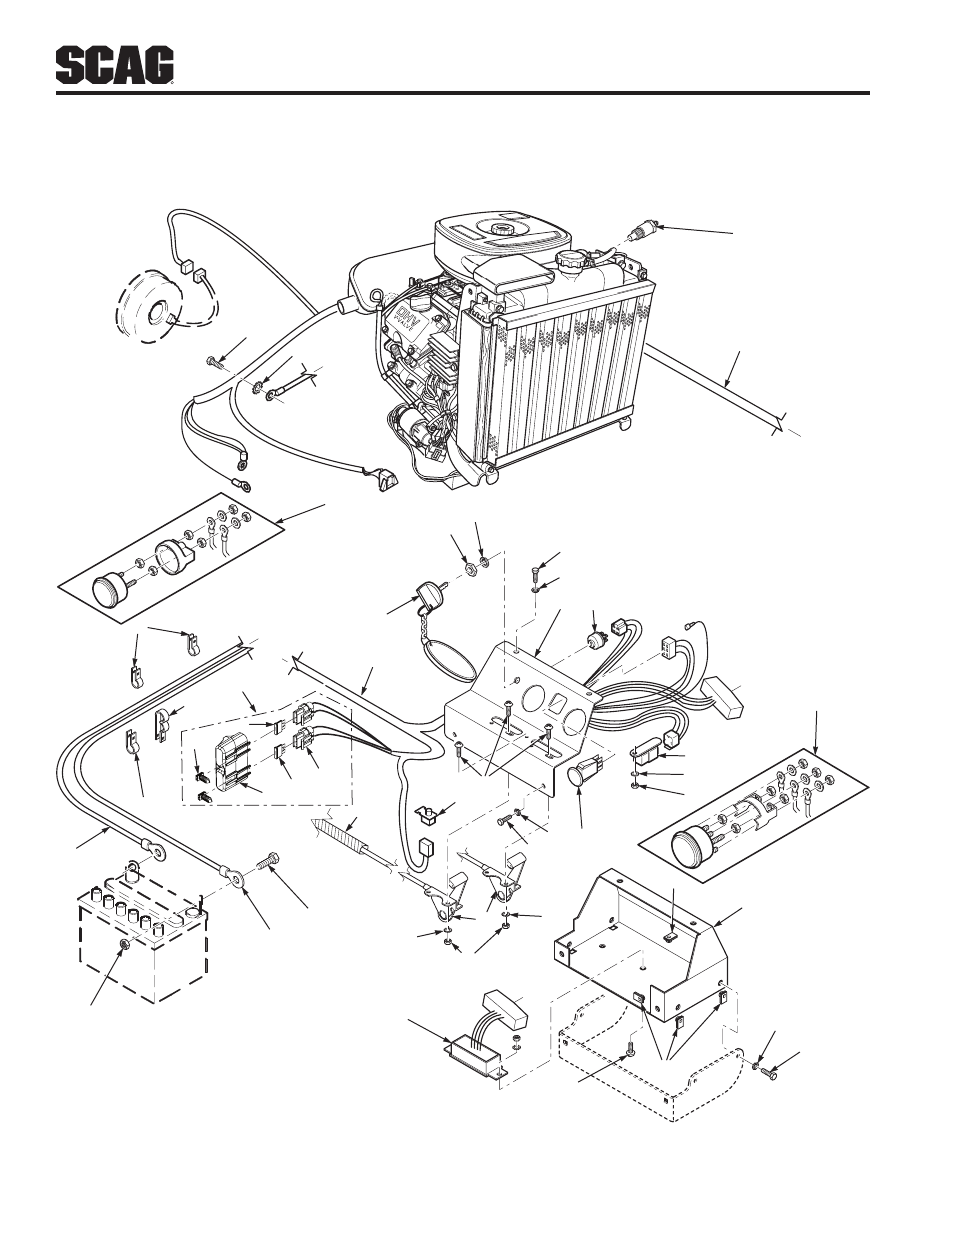 hight resolution of electrical system 27hp kawasaki scag power equipment turf tiger stt52v 27ch user manual page 81 138